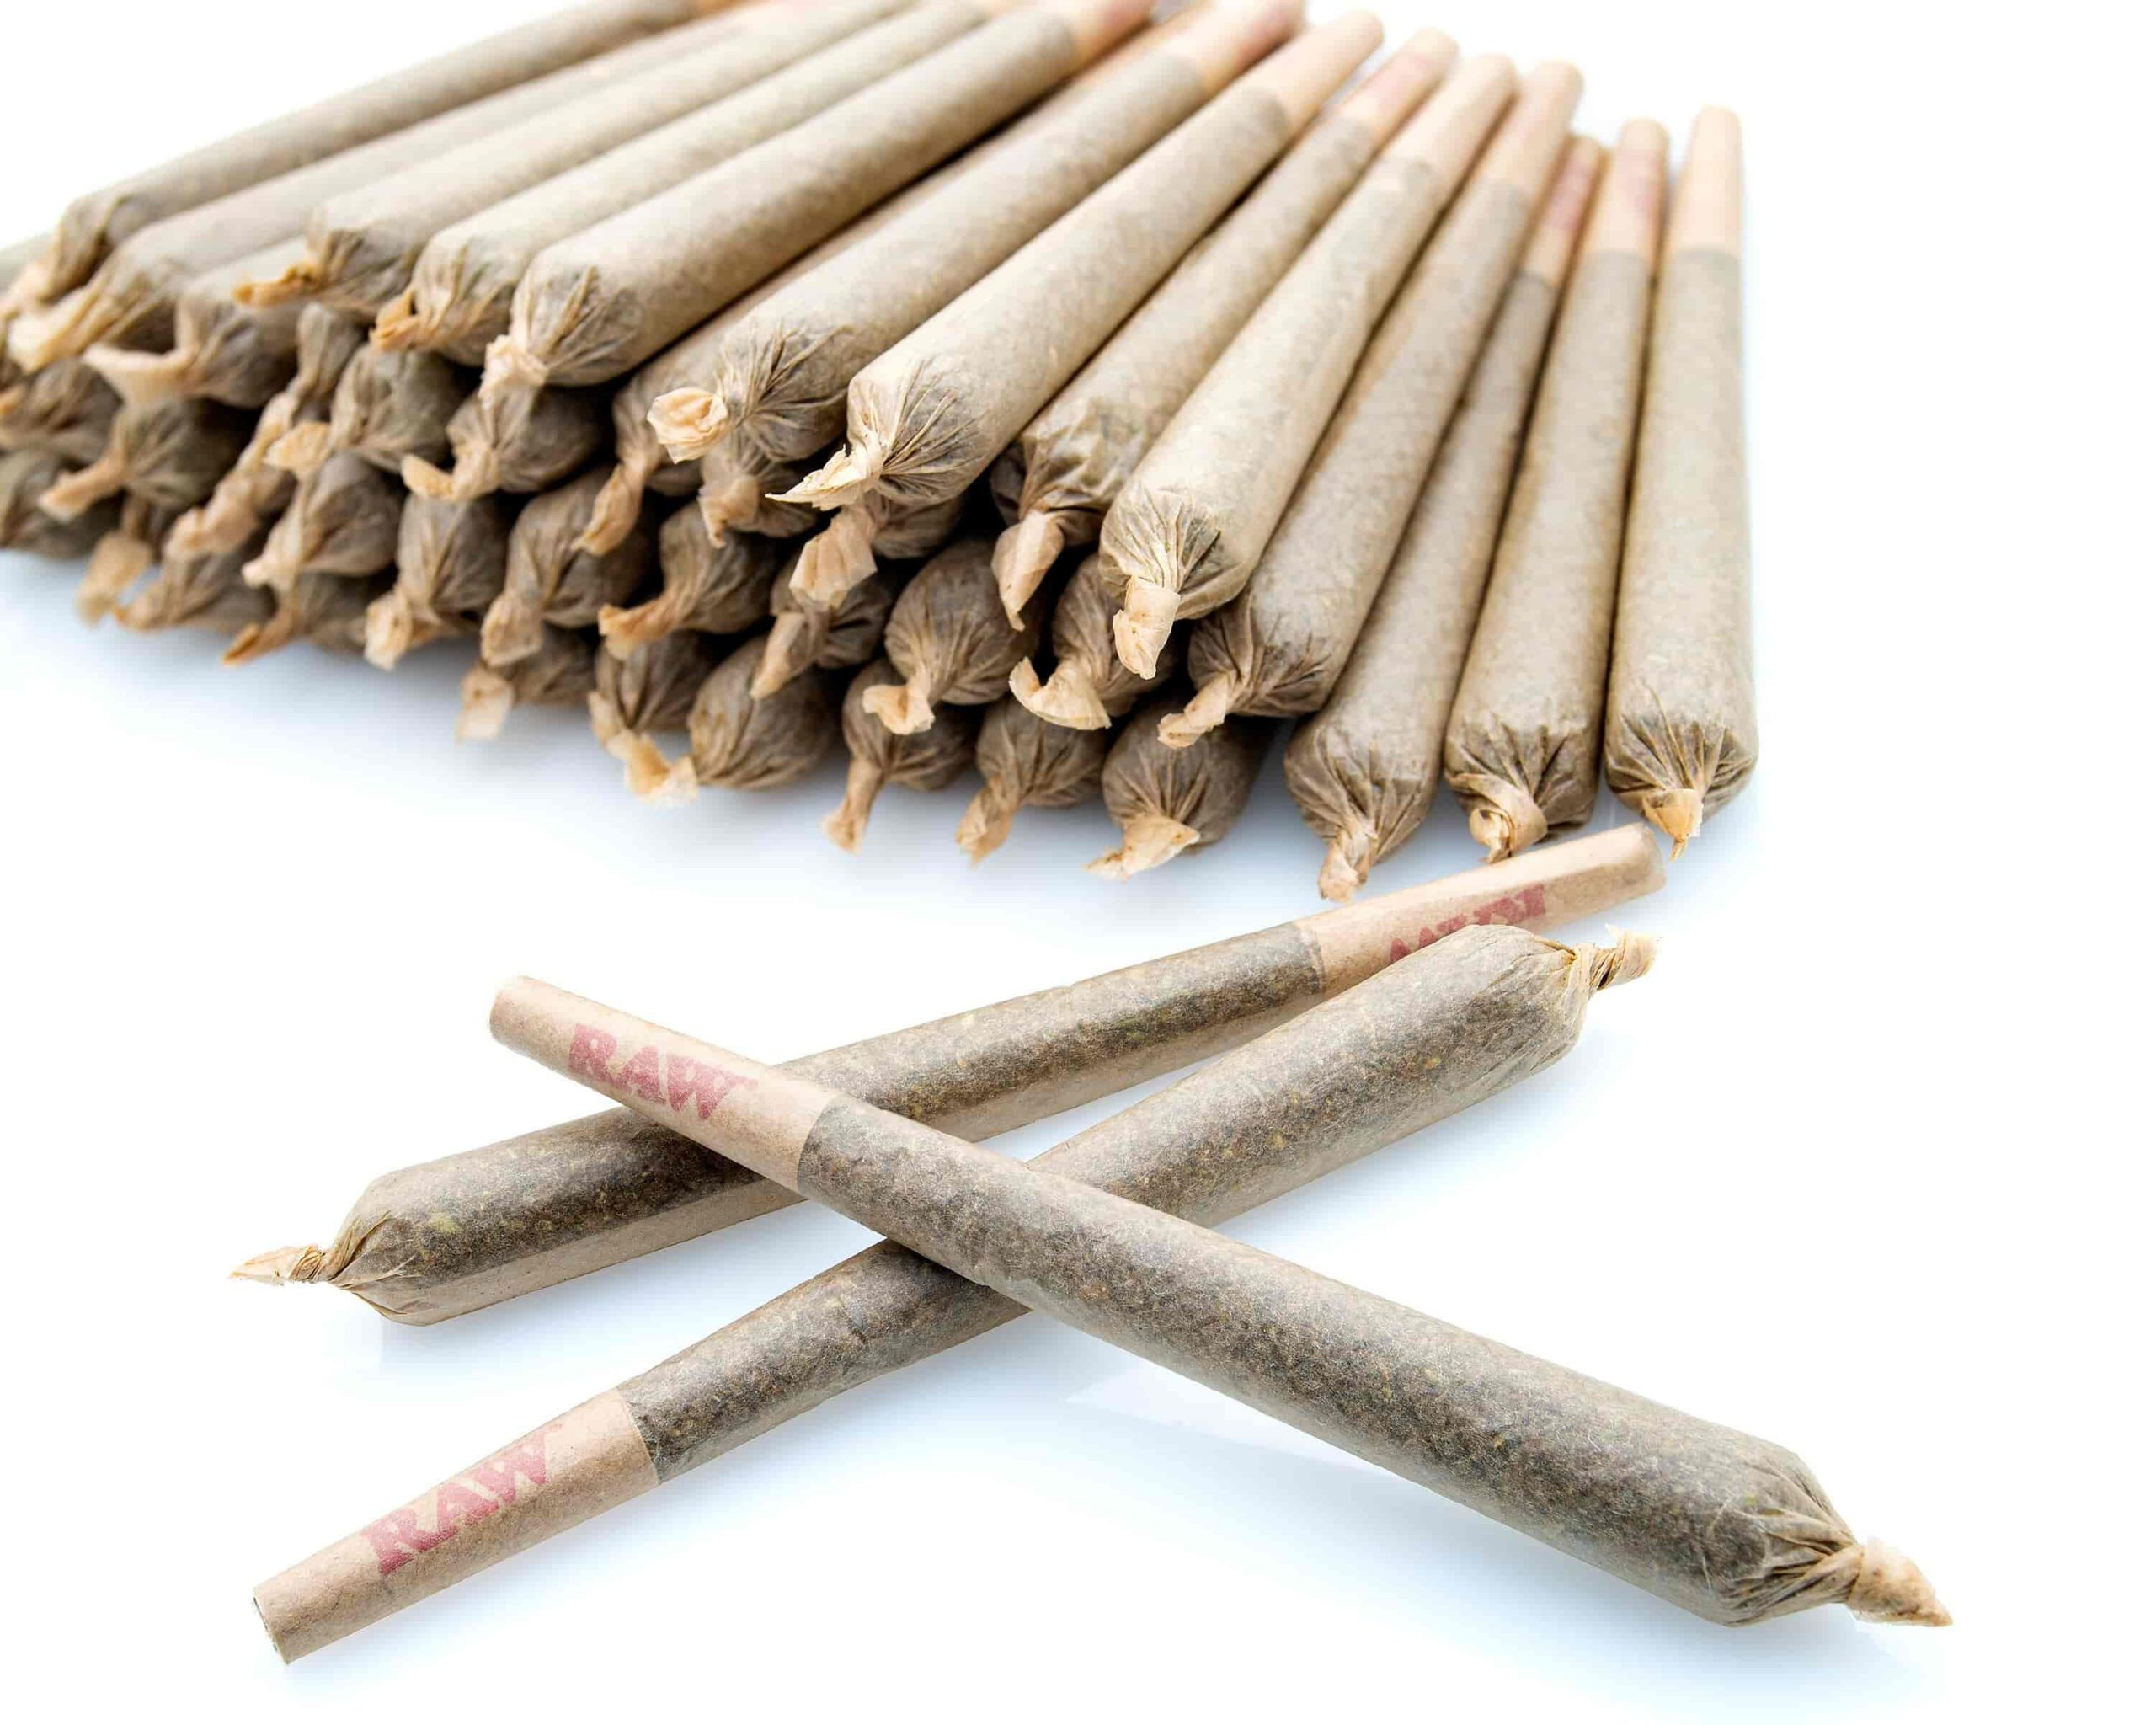 Superior Quality CBD Hemp Flower Pre rolled 1 gram cones massive mark up Instant Benefits Pain anxiety relief